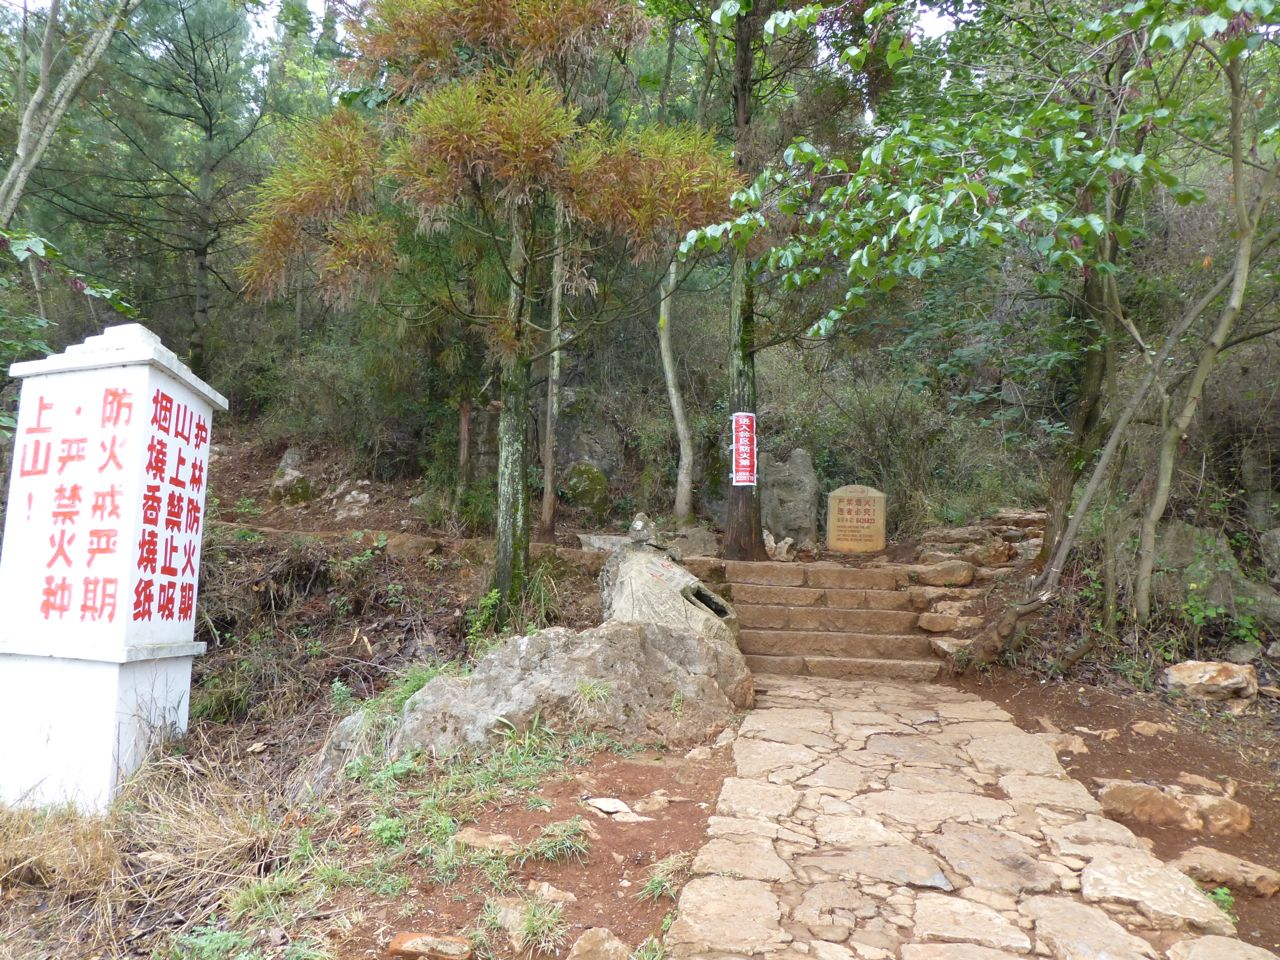 Typical path and mysterious signs